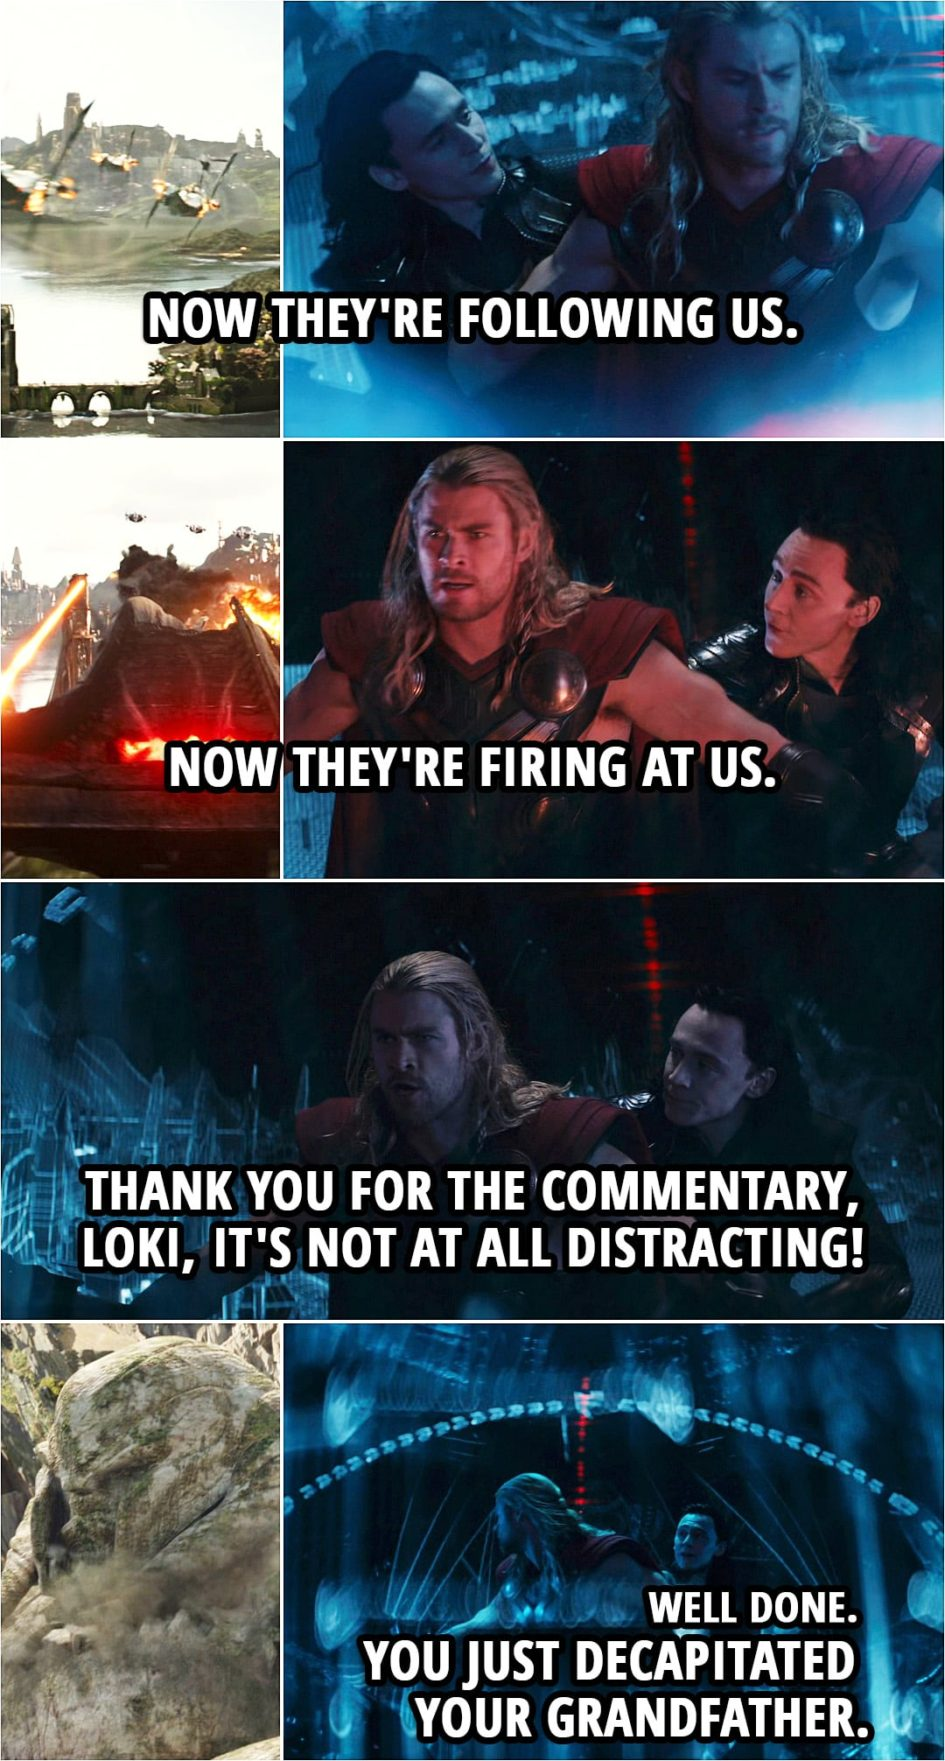 Quote from Thor: The Dark World (2013) | Loki: Now they're following us. Now they're firing at us. Thor: Yeah, thank you for the commentary, Loki, it's not at all distracting! Loki: Well done. You just decapitated your grandfather.